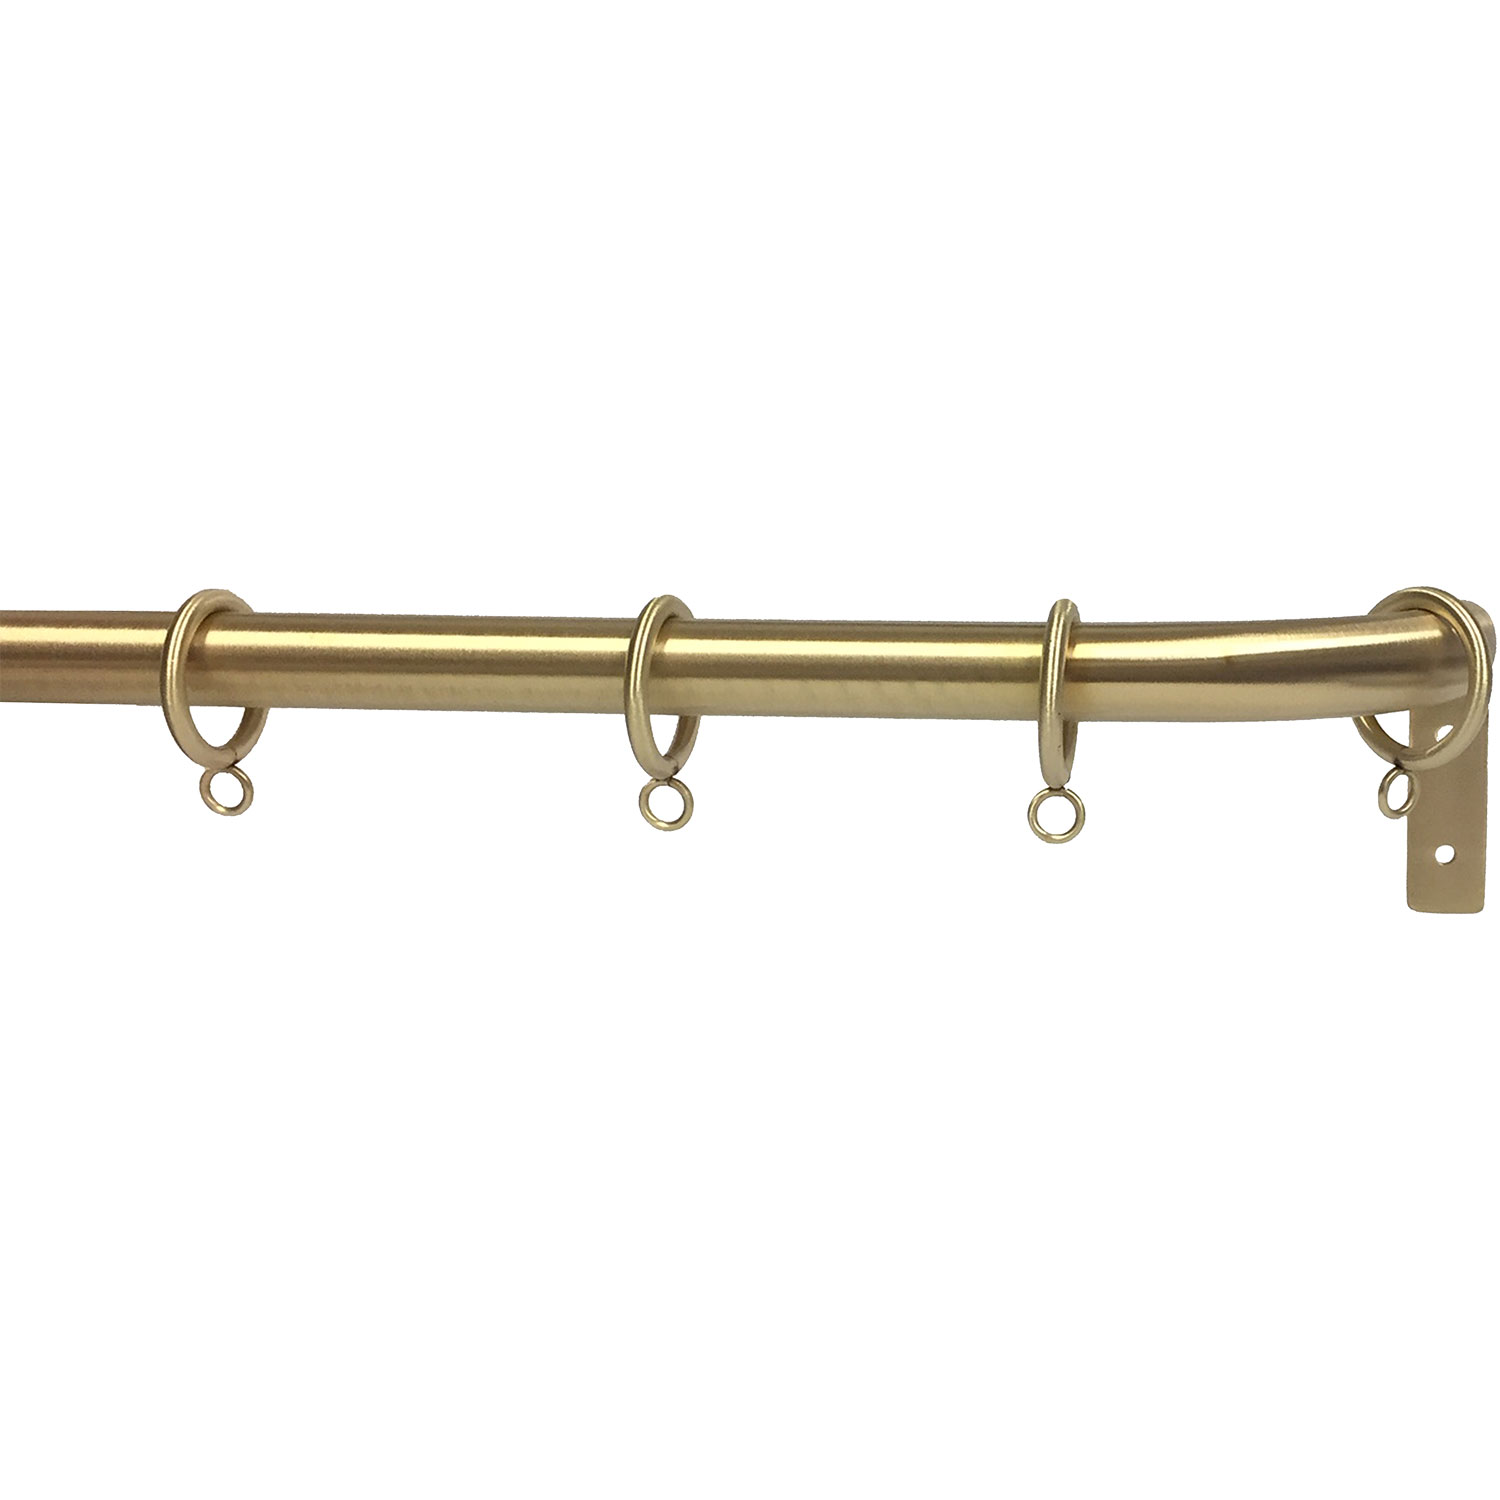 "Matte Brass finish on 1"" rod with French Return"